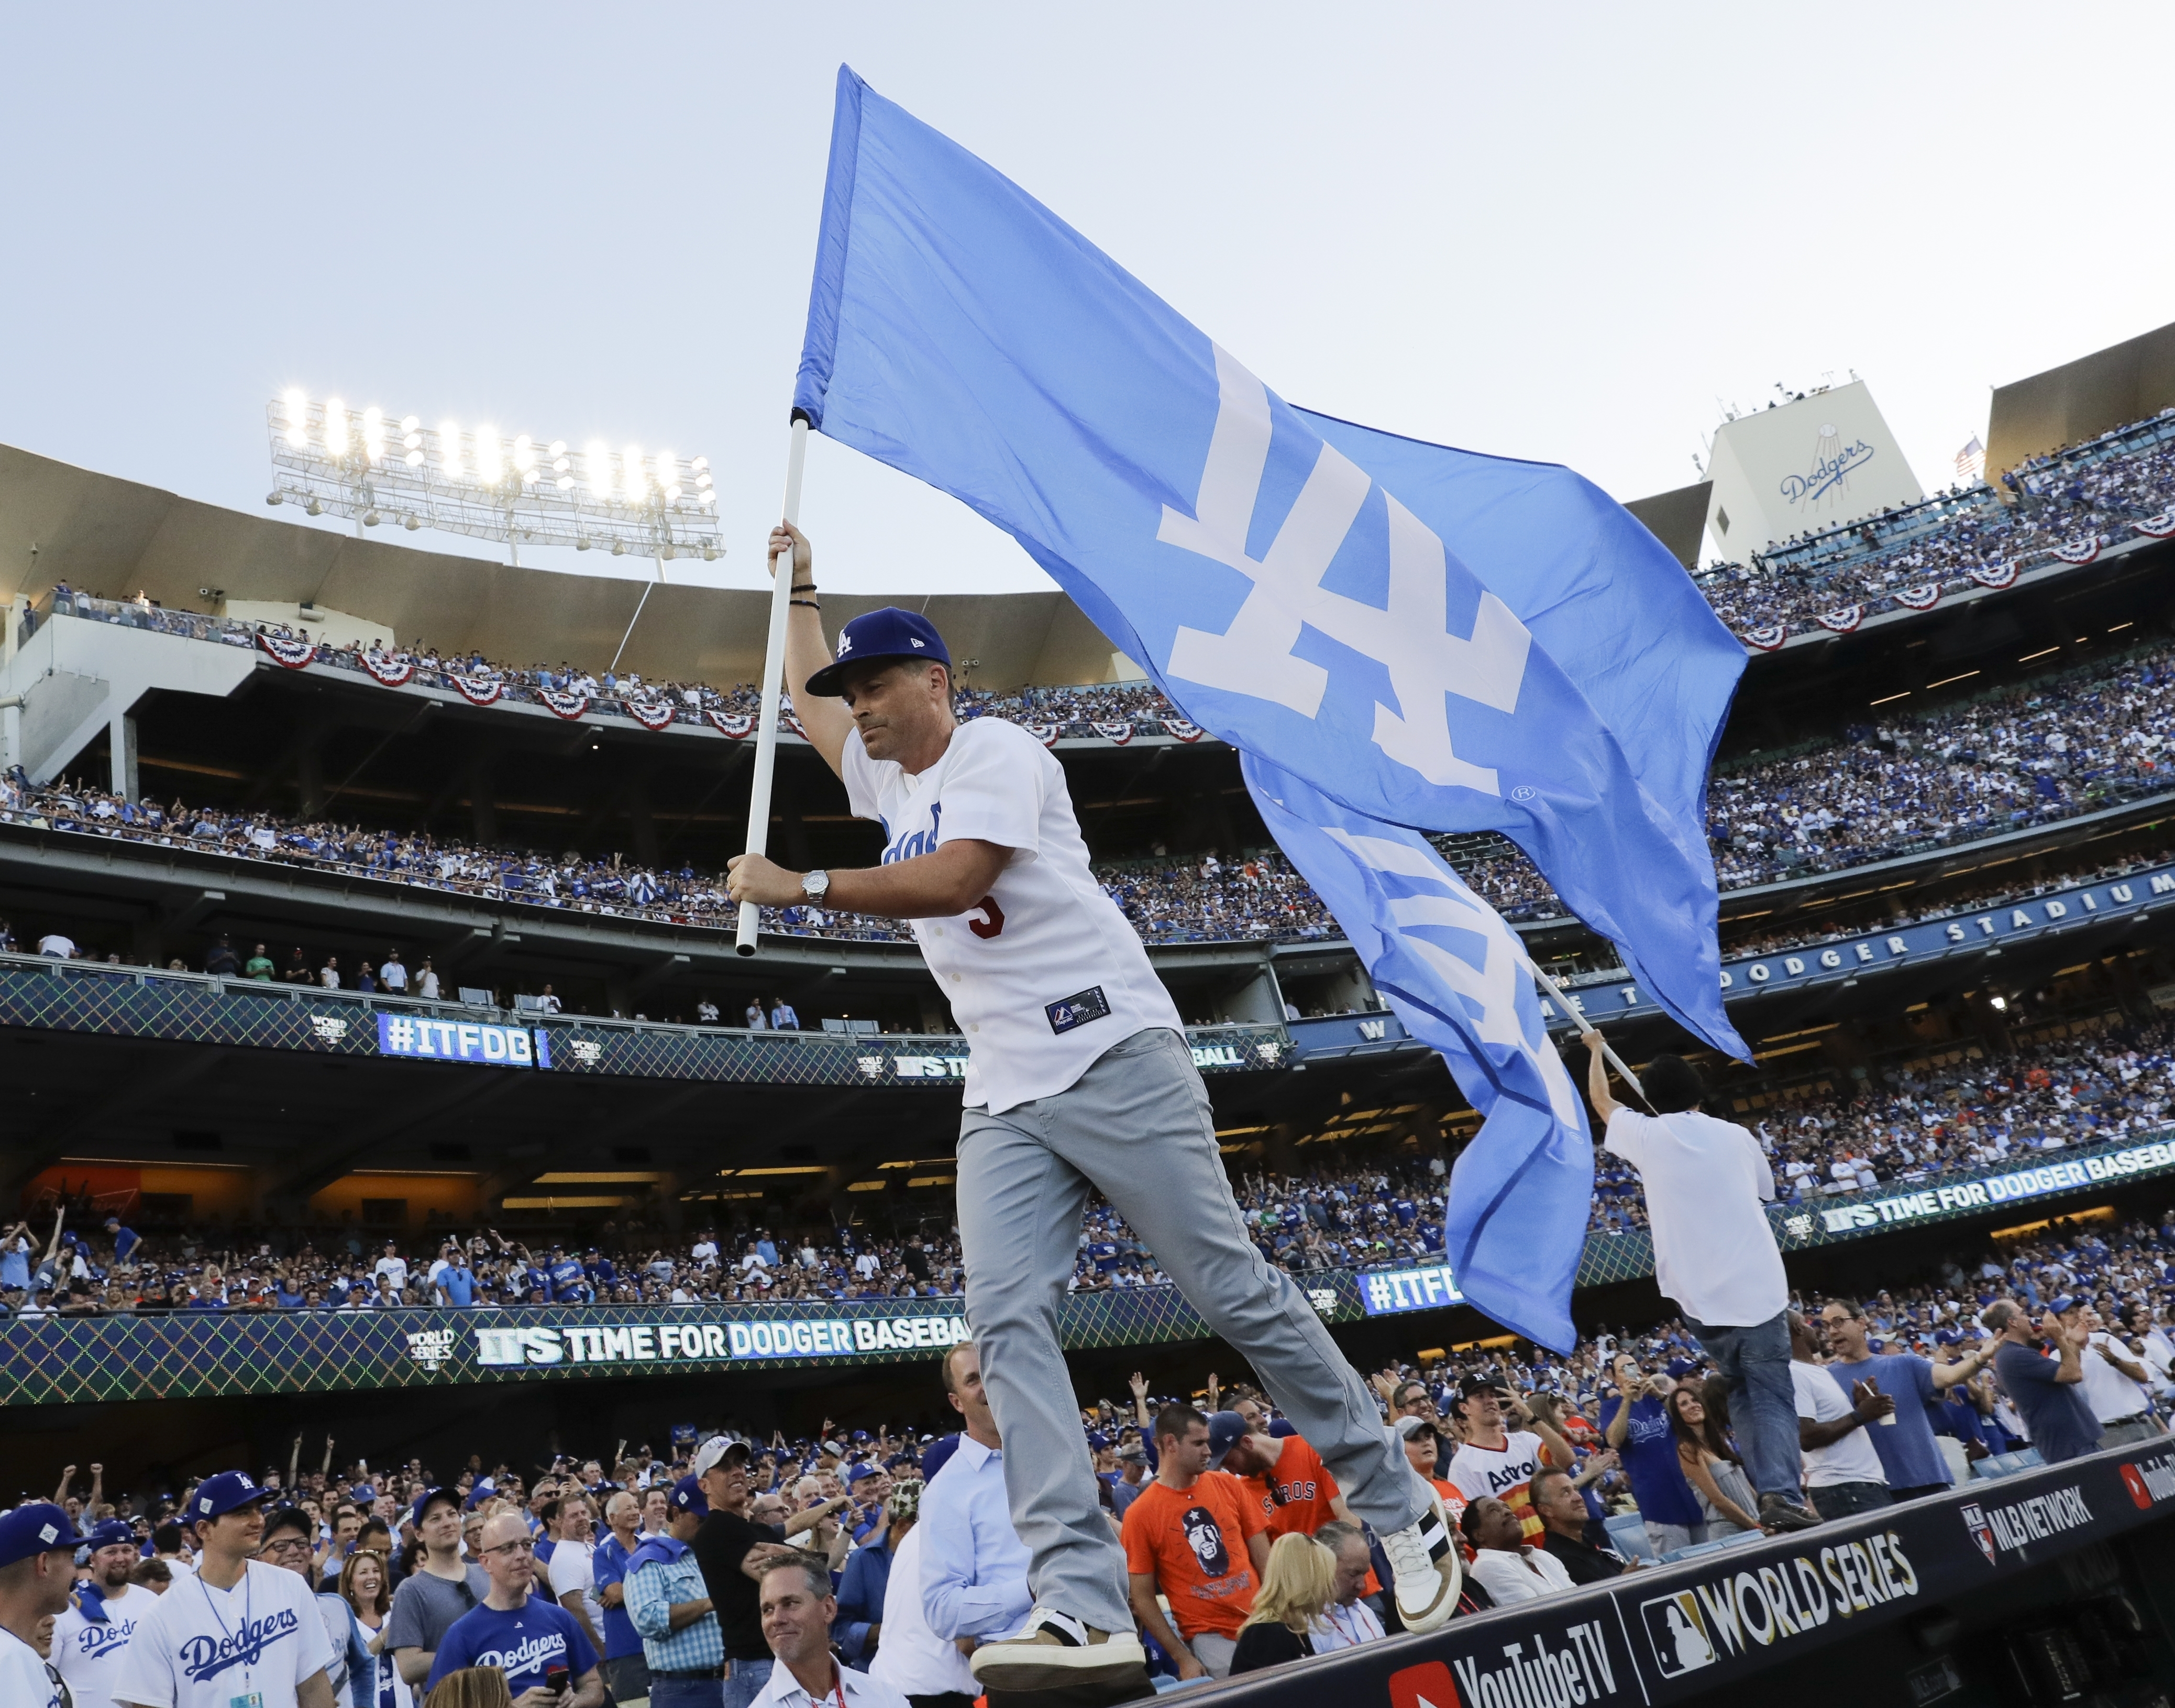 <div class='meta'><div class='origin-logo' data-origin='AP'></div><span class='caption-text' data-credit='(AP Photo/David J. Phillip)'>Actor Rob Lowe runs with a flag before Game 1 of baseball's World Series between the Houston Astros and the Los Angeles Dodgers Tuesday, Oct. 24, 2017, in Los Angeles.</span></div>